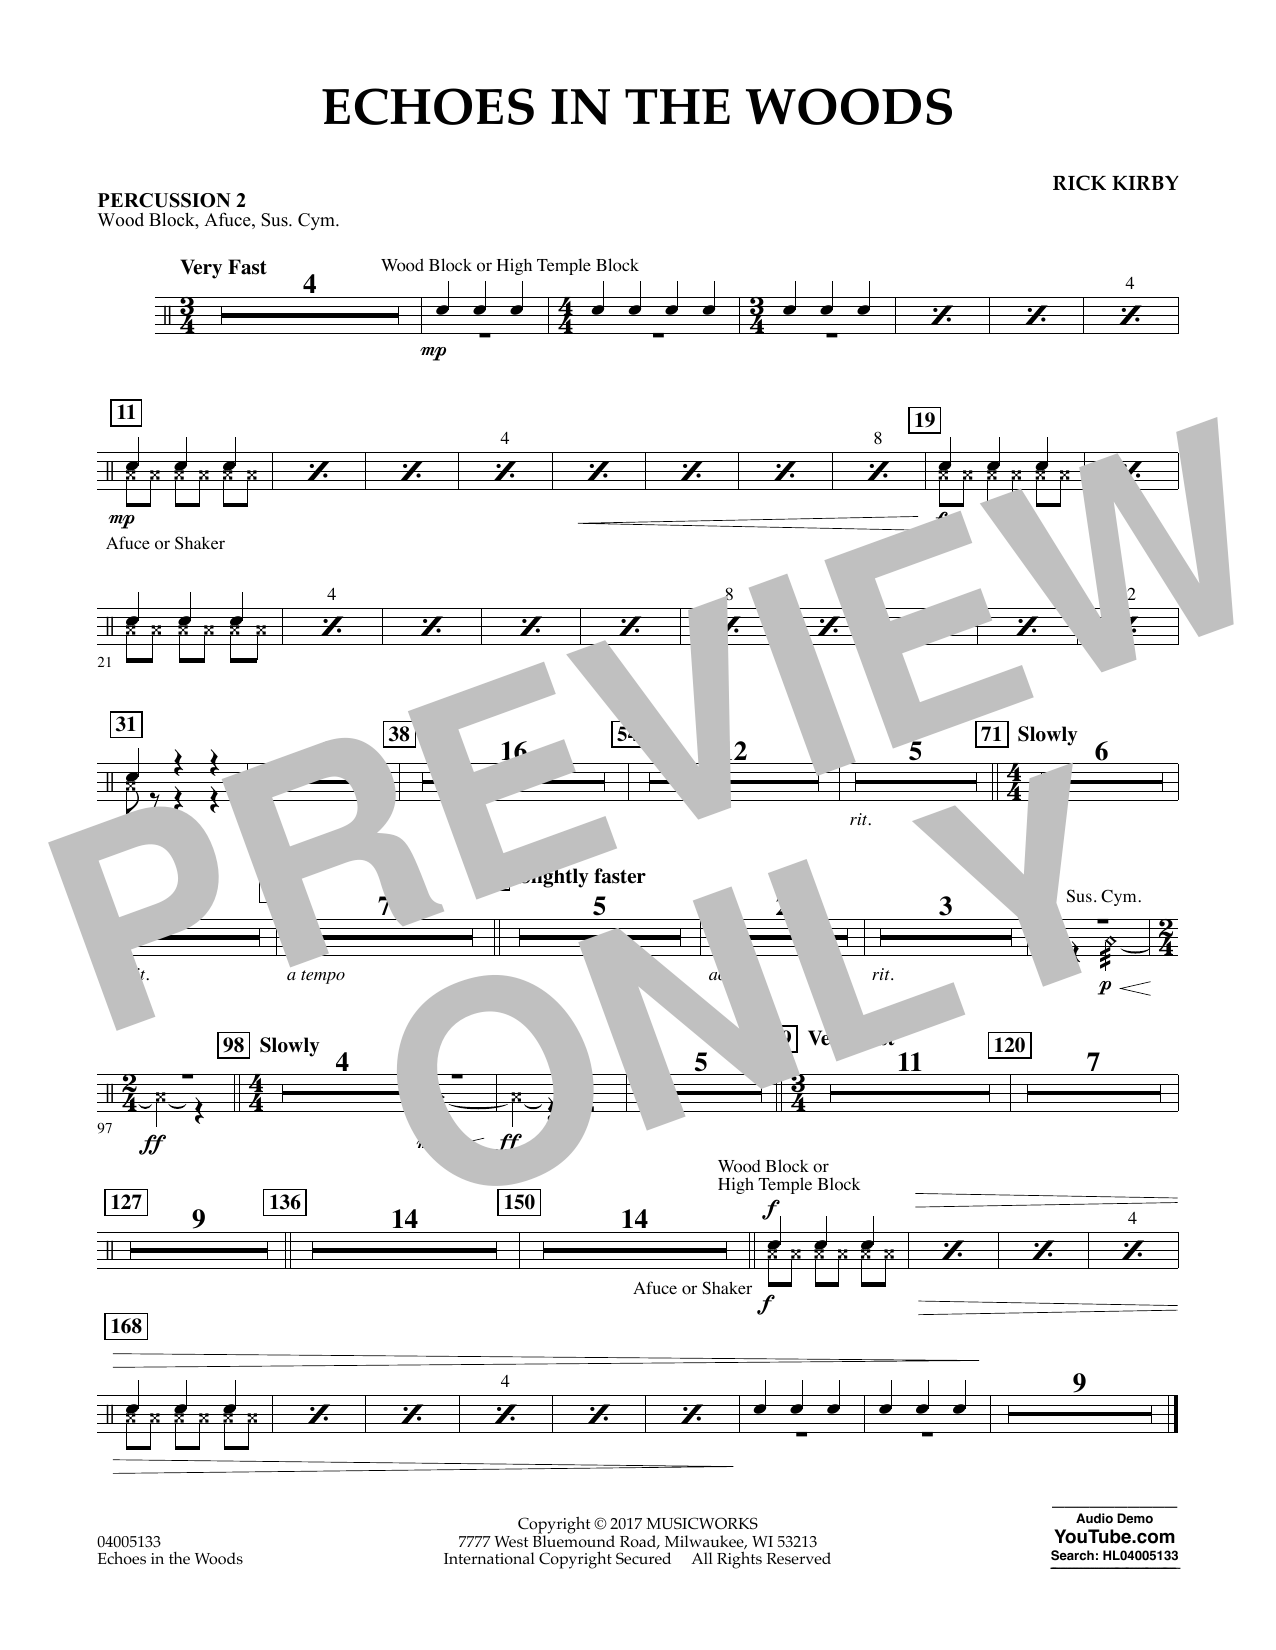 Rick Kirby Echoes in the Woods - Percussion 2 sheet music notes and chords. Download Printable PDF.